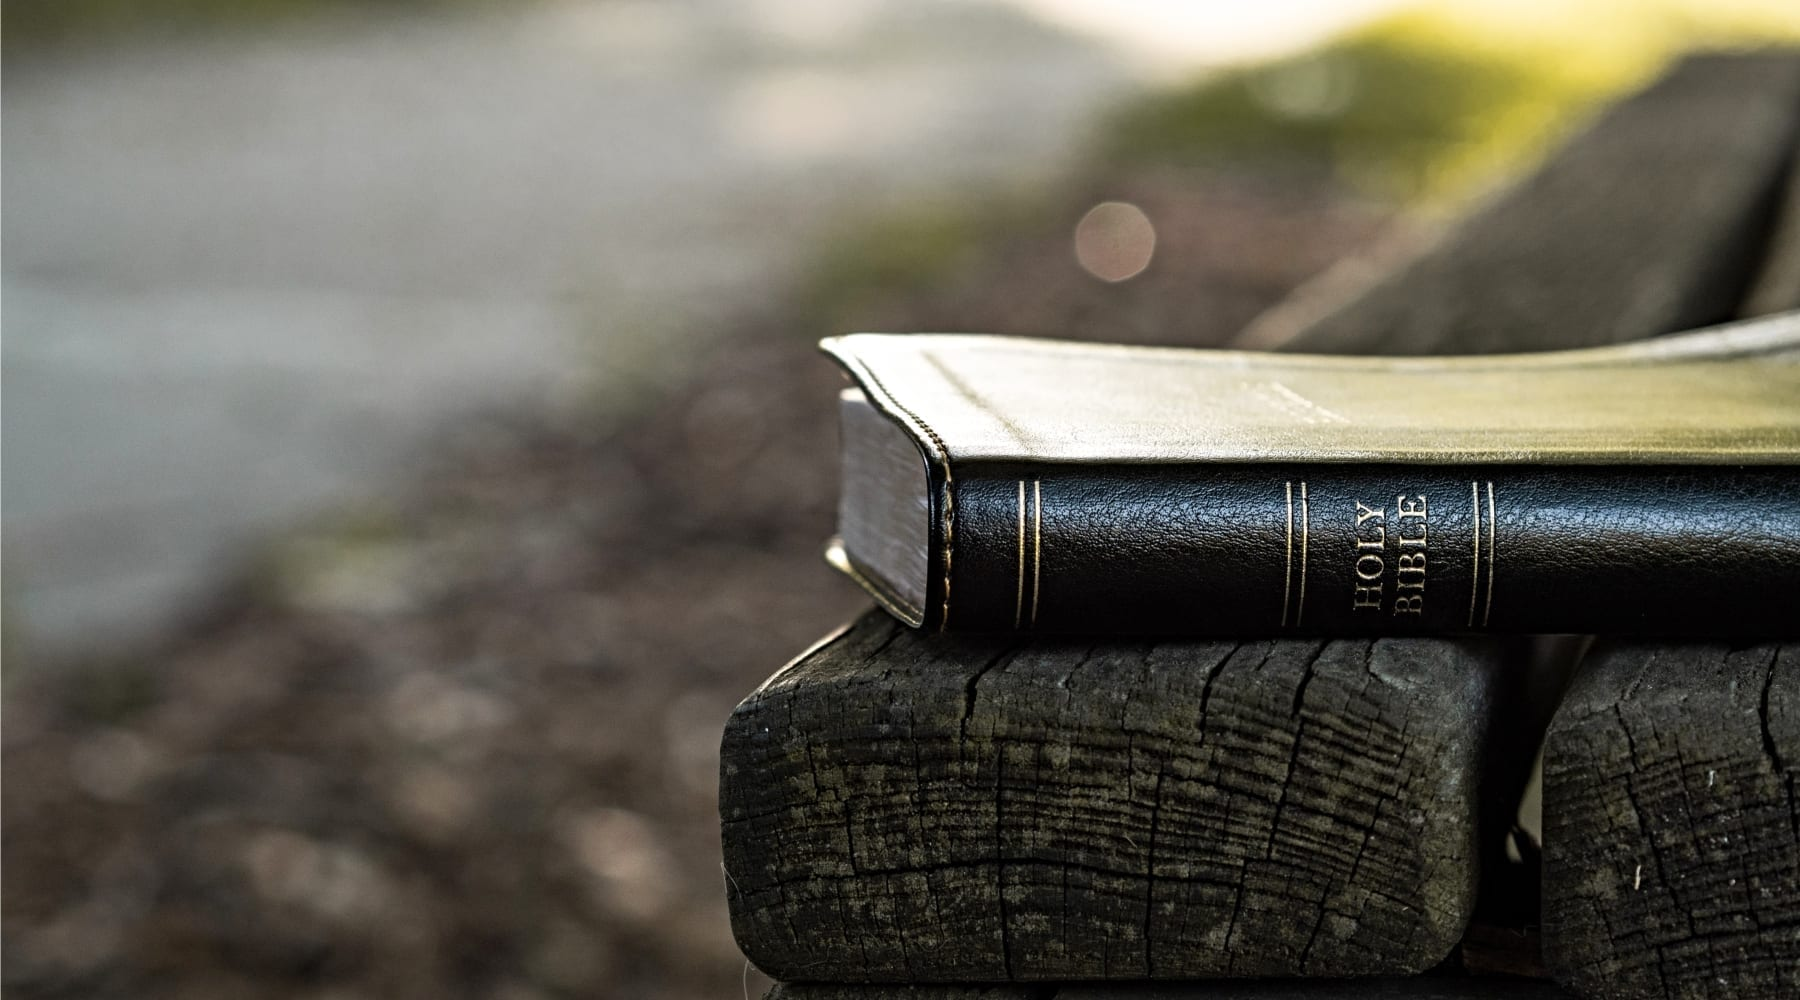 Moving Toward Non-Gendered Language in Scripture